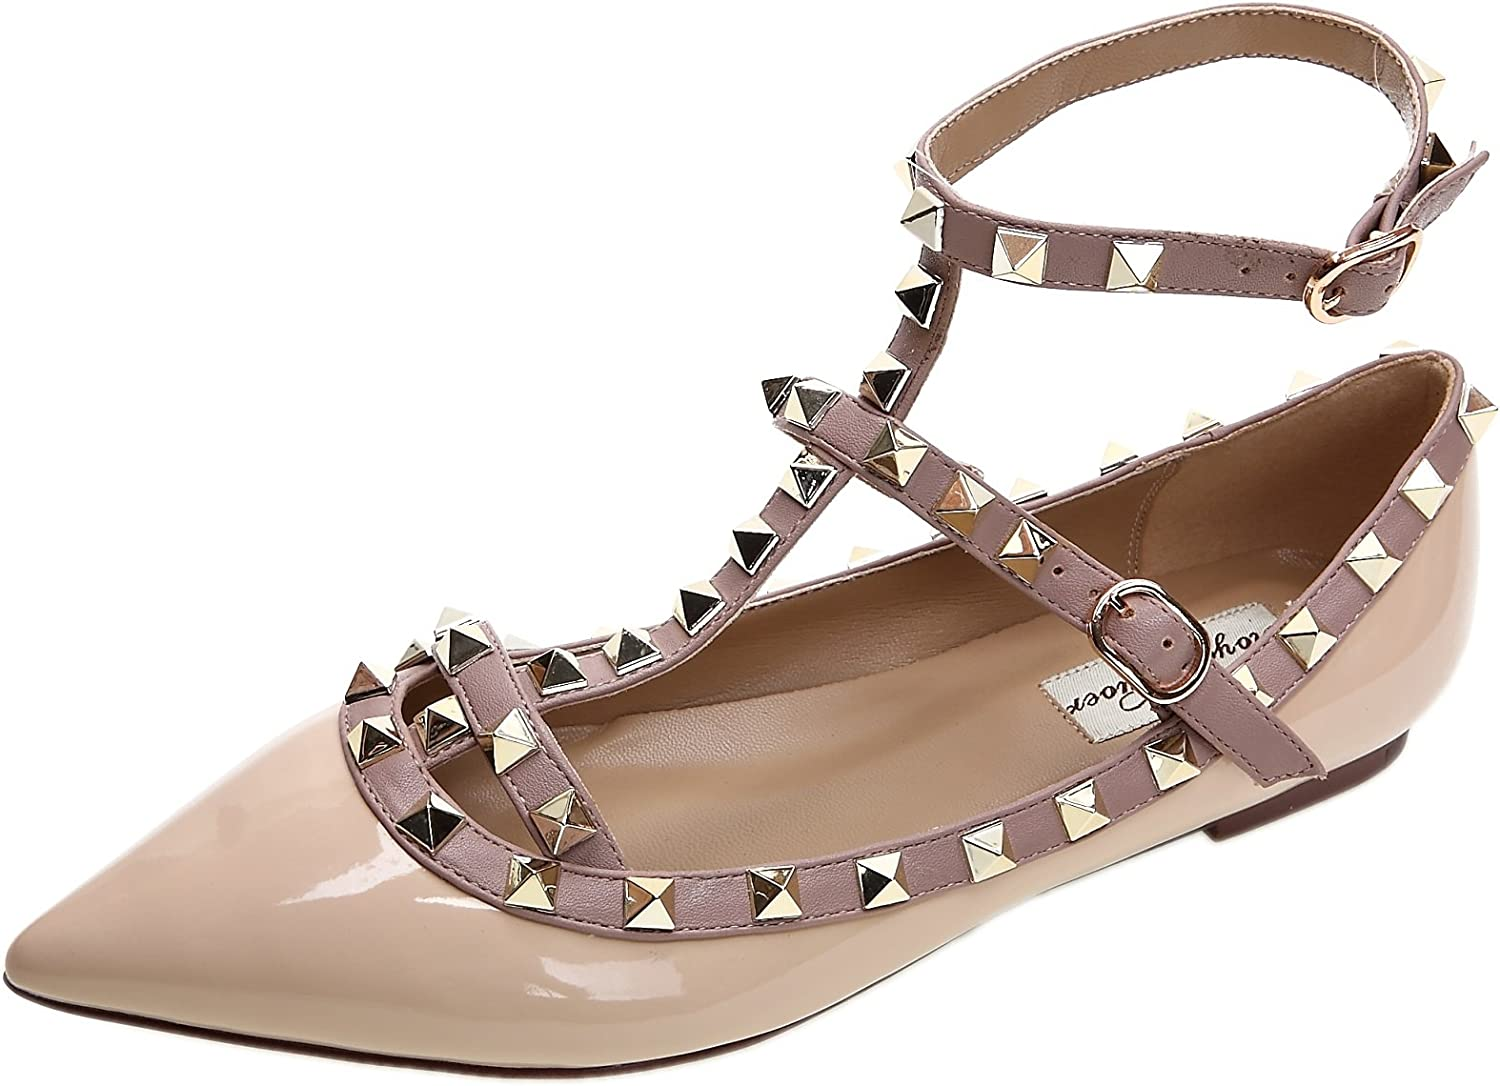 Royou Yiuoer Women's Studded Ballet-Flats Buckle T-Strap Pointed-Toe shoes